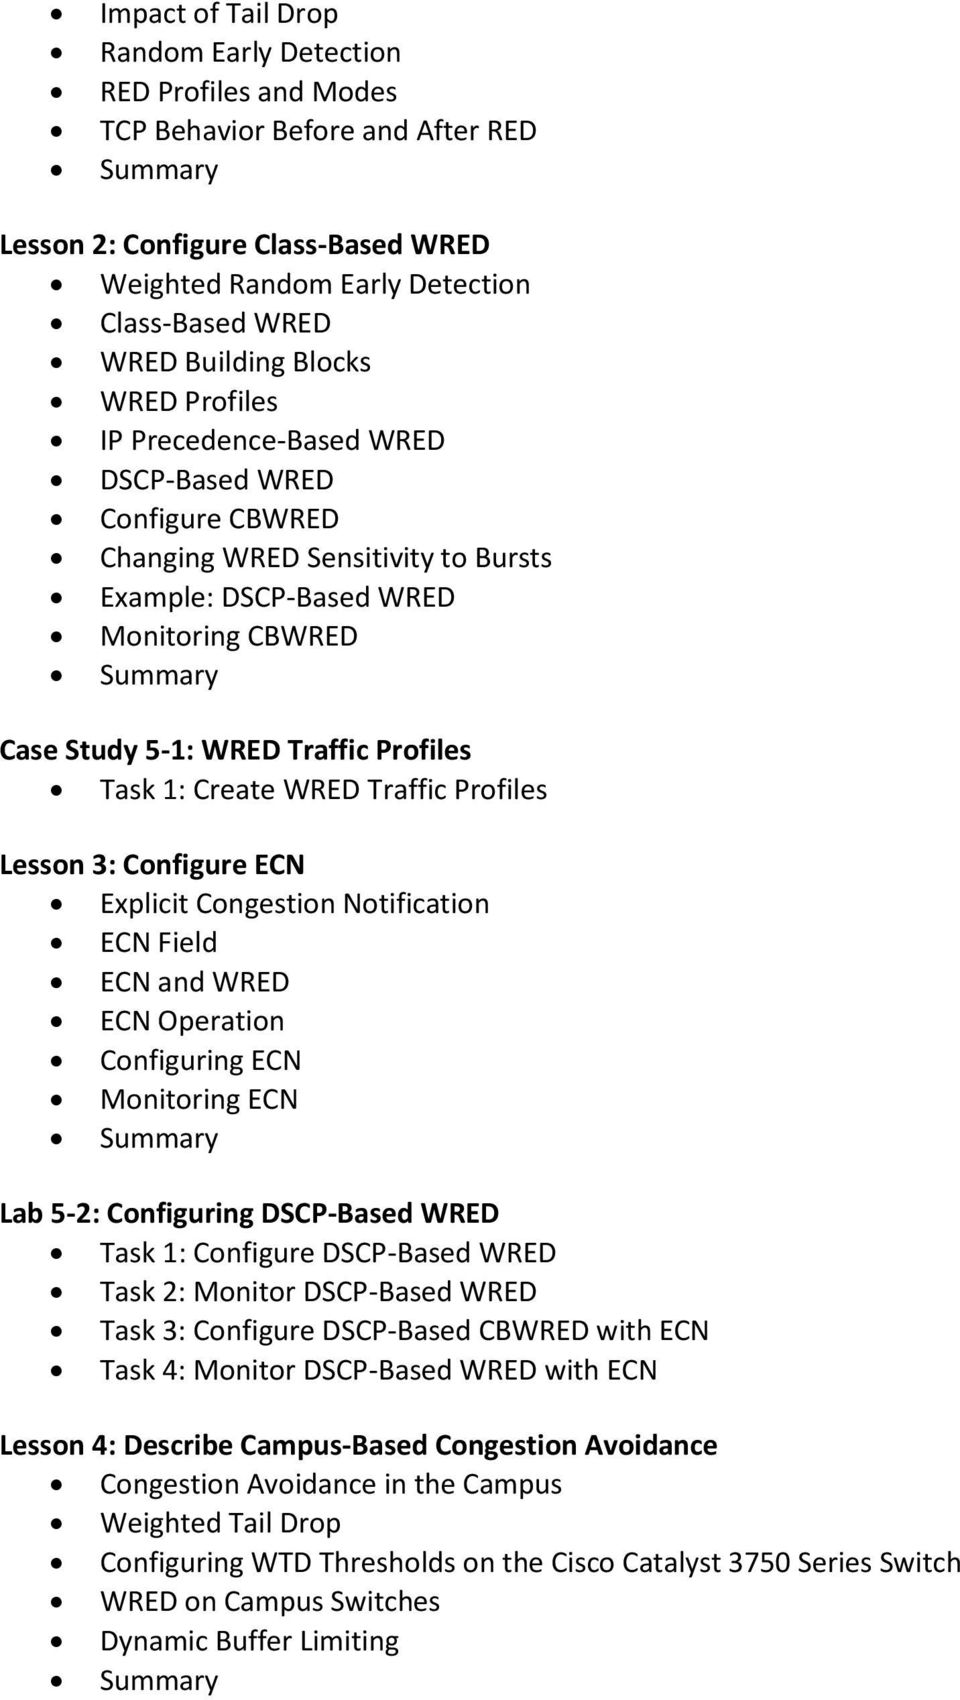 Task 1: Create WRED Traffic Profiles Lesson 3: Configure ECN Explicit Congestion Notification ECN Field ECN and WRED ECN Operation Configuring ECN Monitoring ECN Lab 5-2: Configuring DSCP-Based WRED